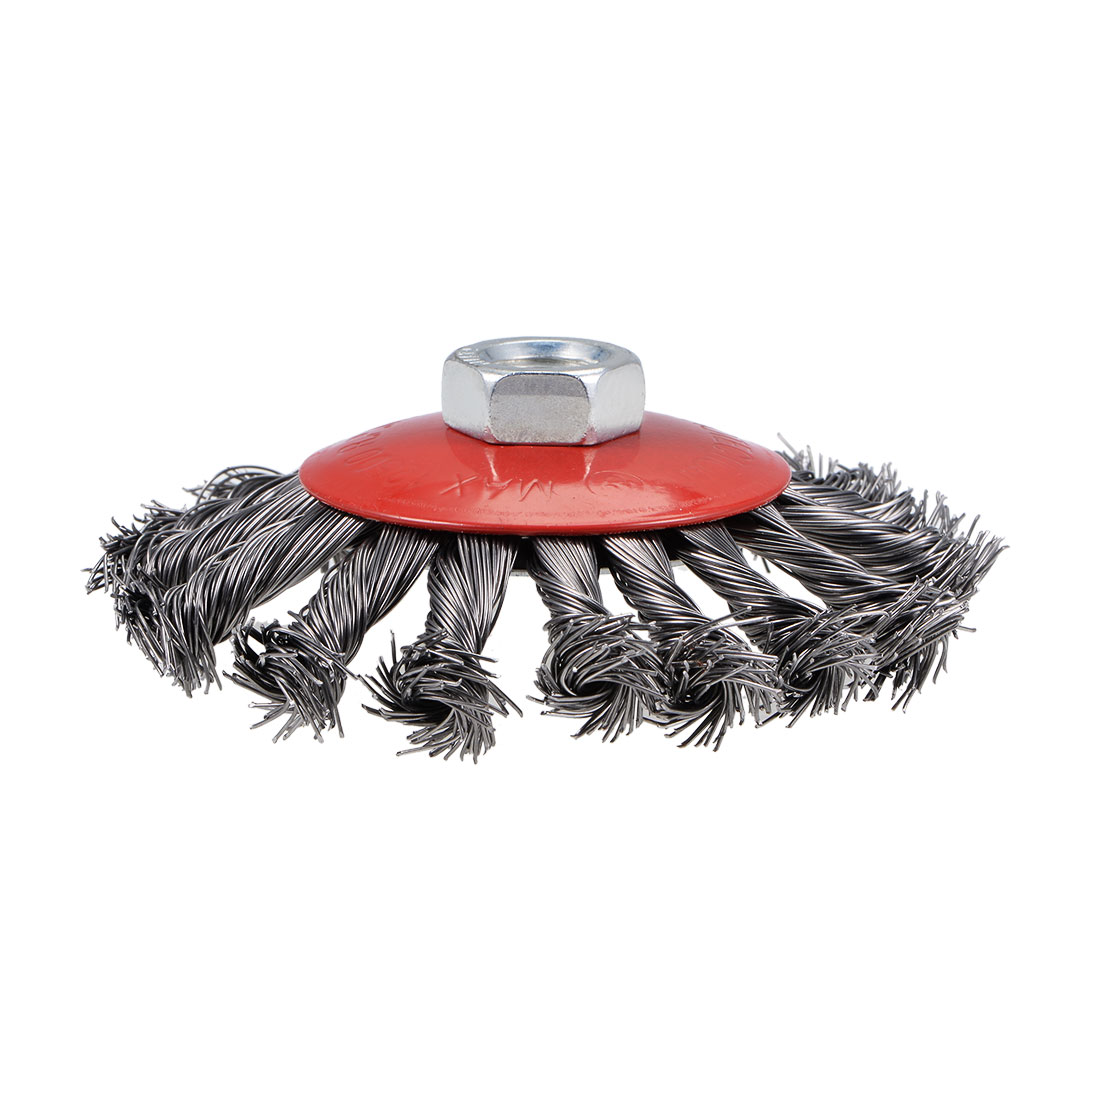 108mm Wire Cup Brush Twist Knotted Crimped Steel with M14 Threaded Hole